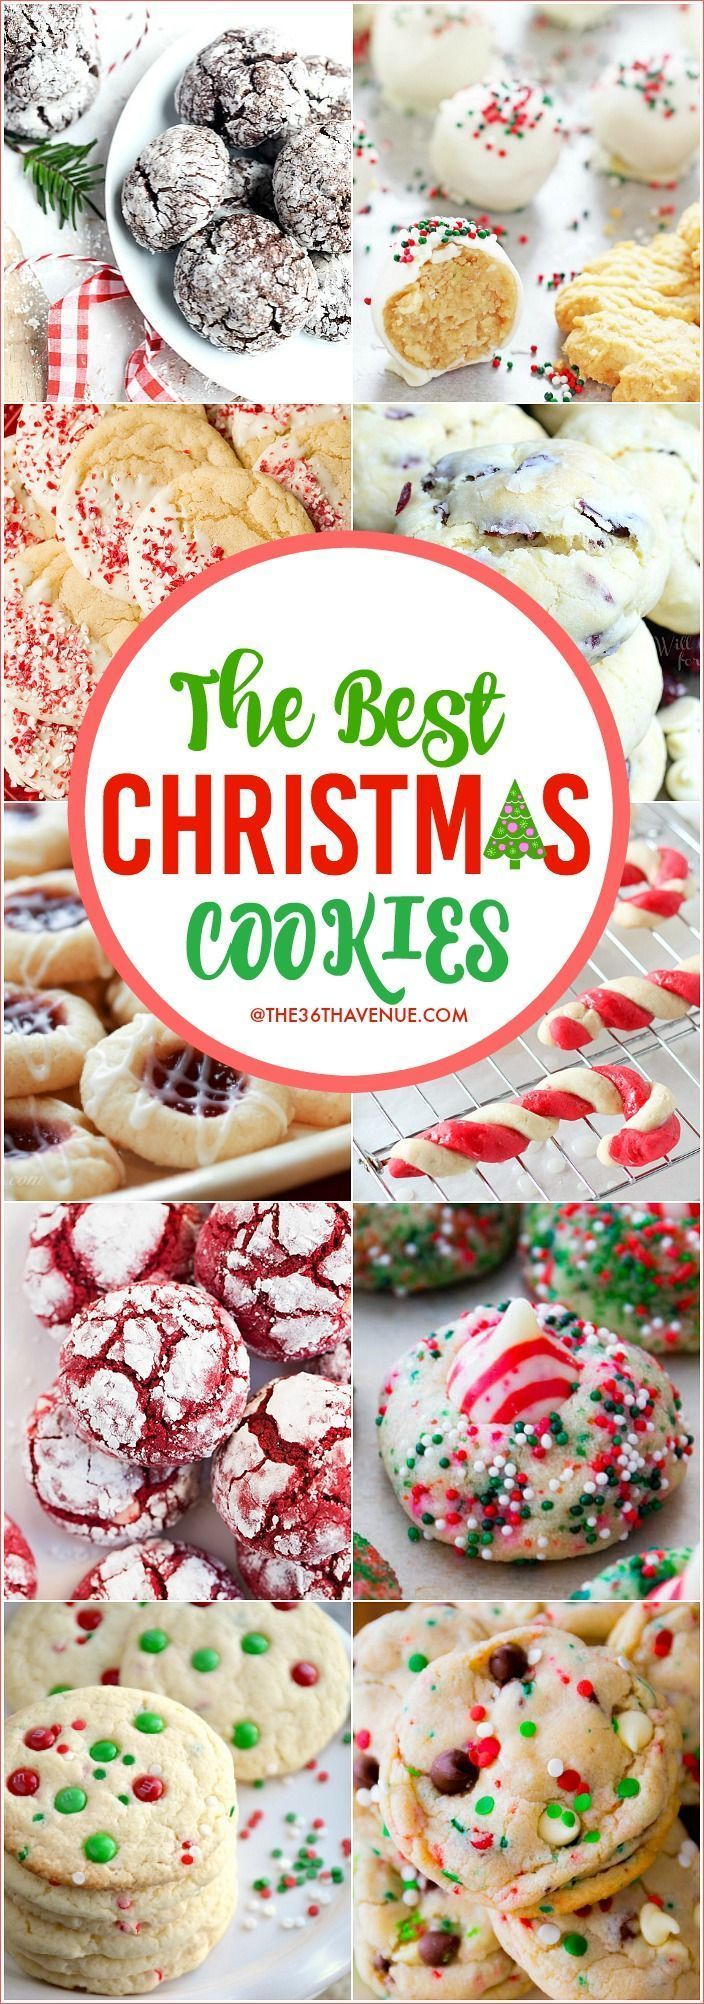 1752 best good food holidays images on pinterest for Some good christmas treats to make